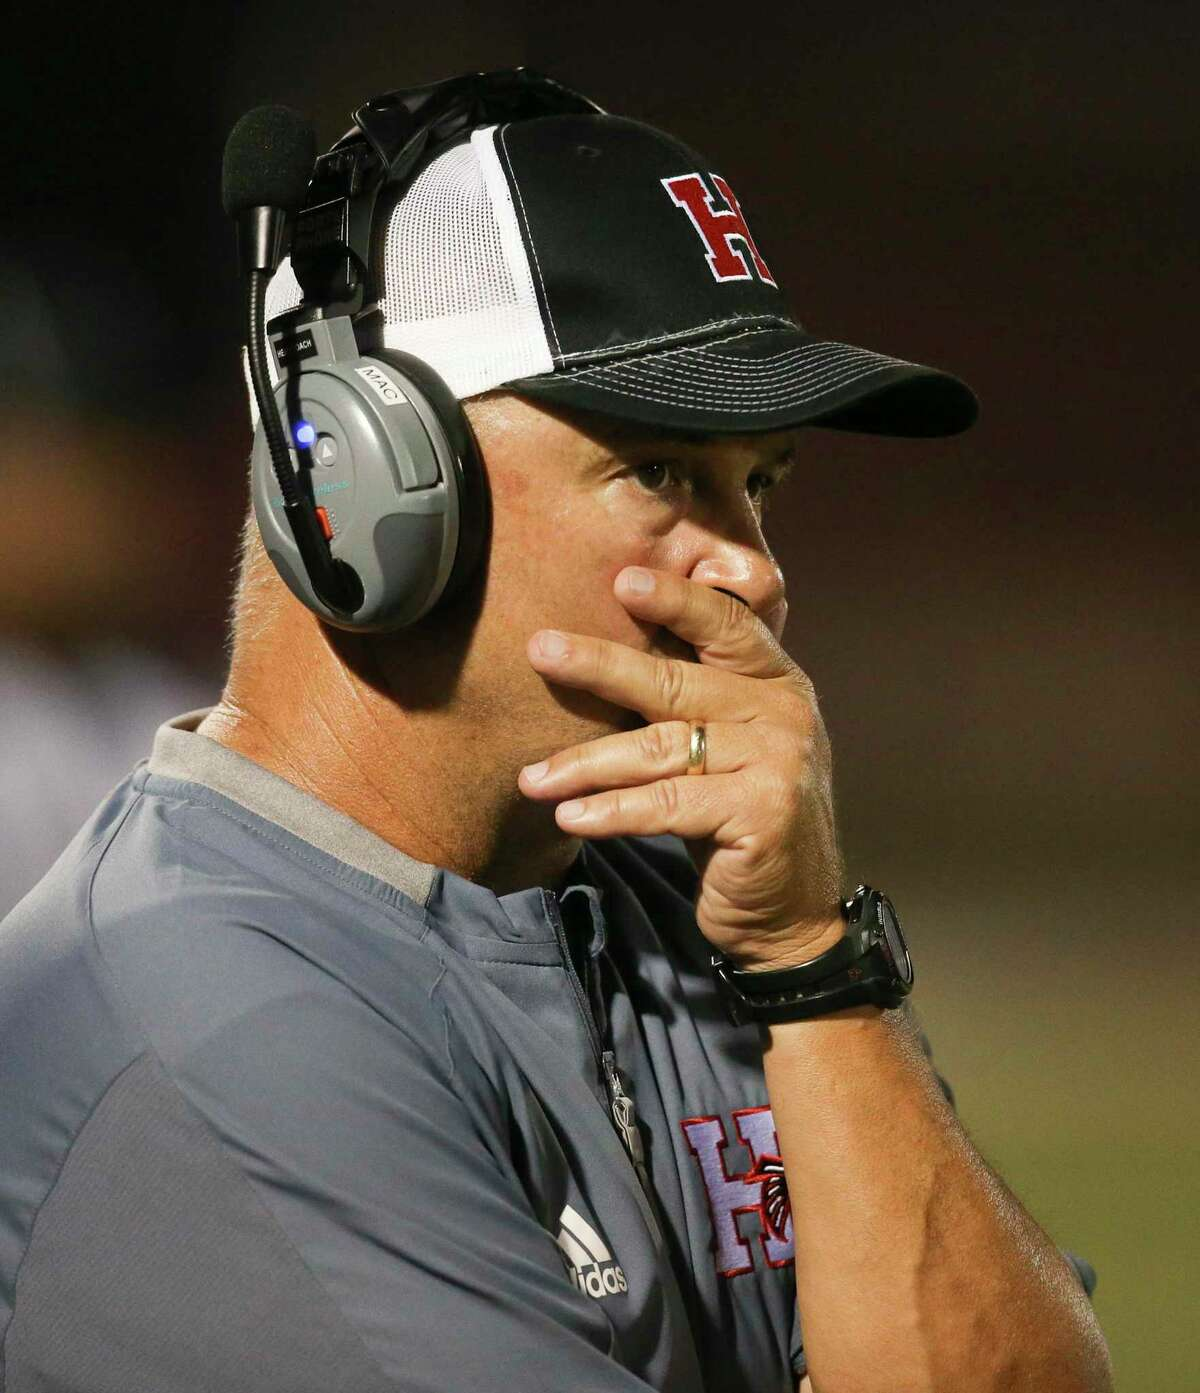 Huffman head coach Mike McEachern watches play against Worthing in the first half on September 13, 2019 at Hargrave High School in Huffman, TX.